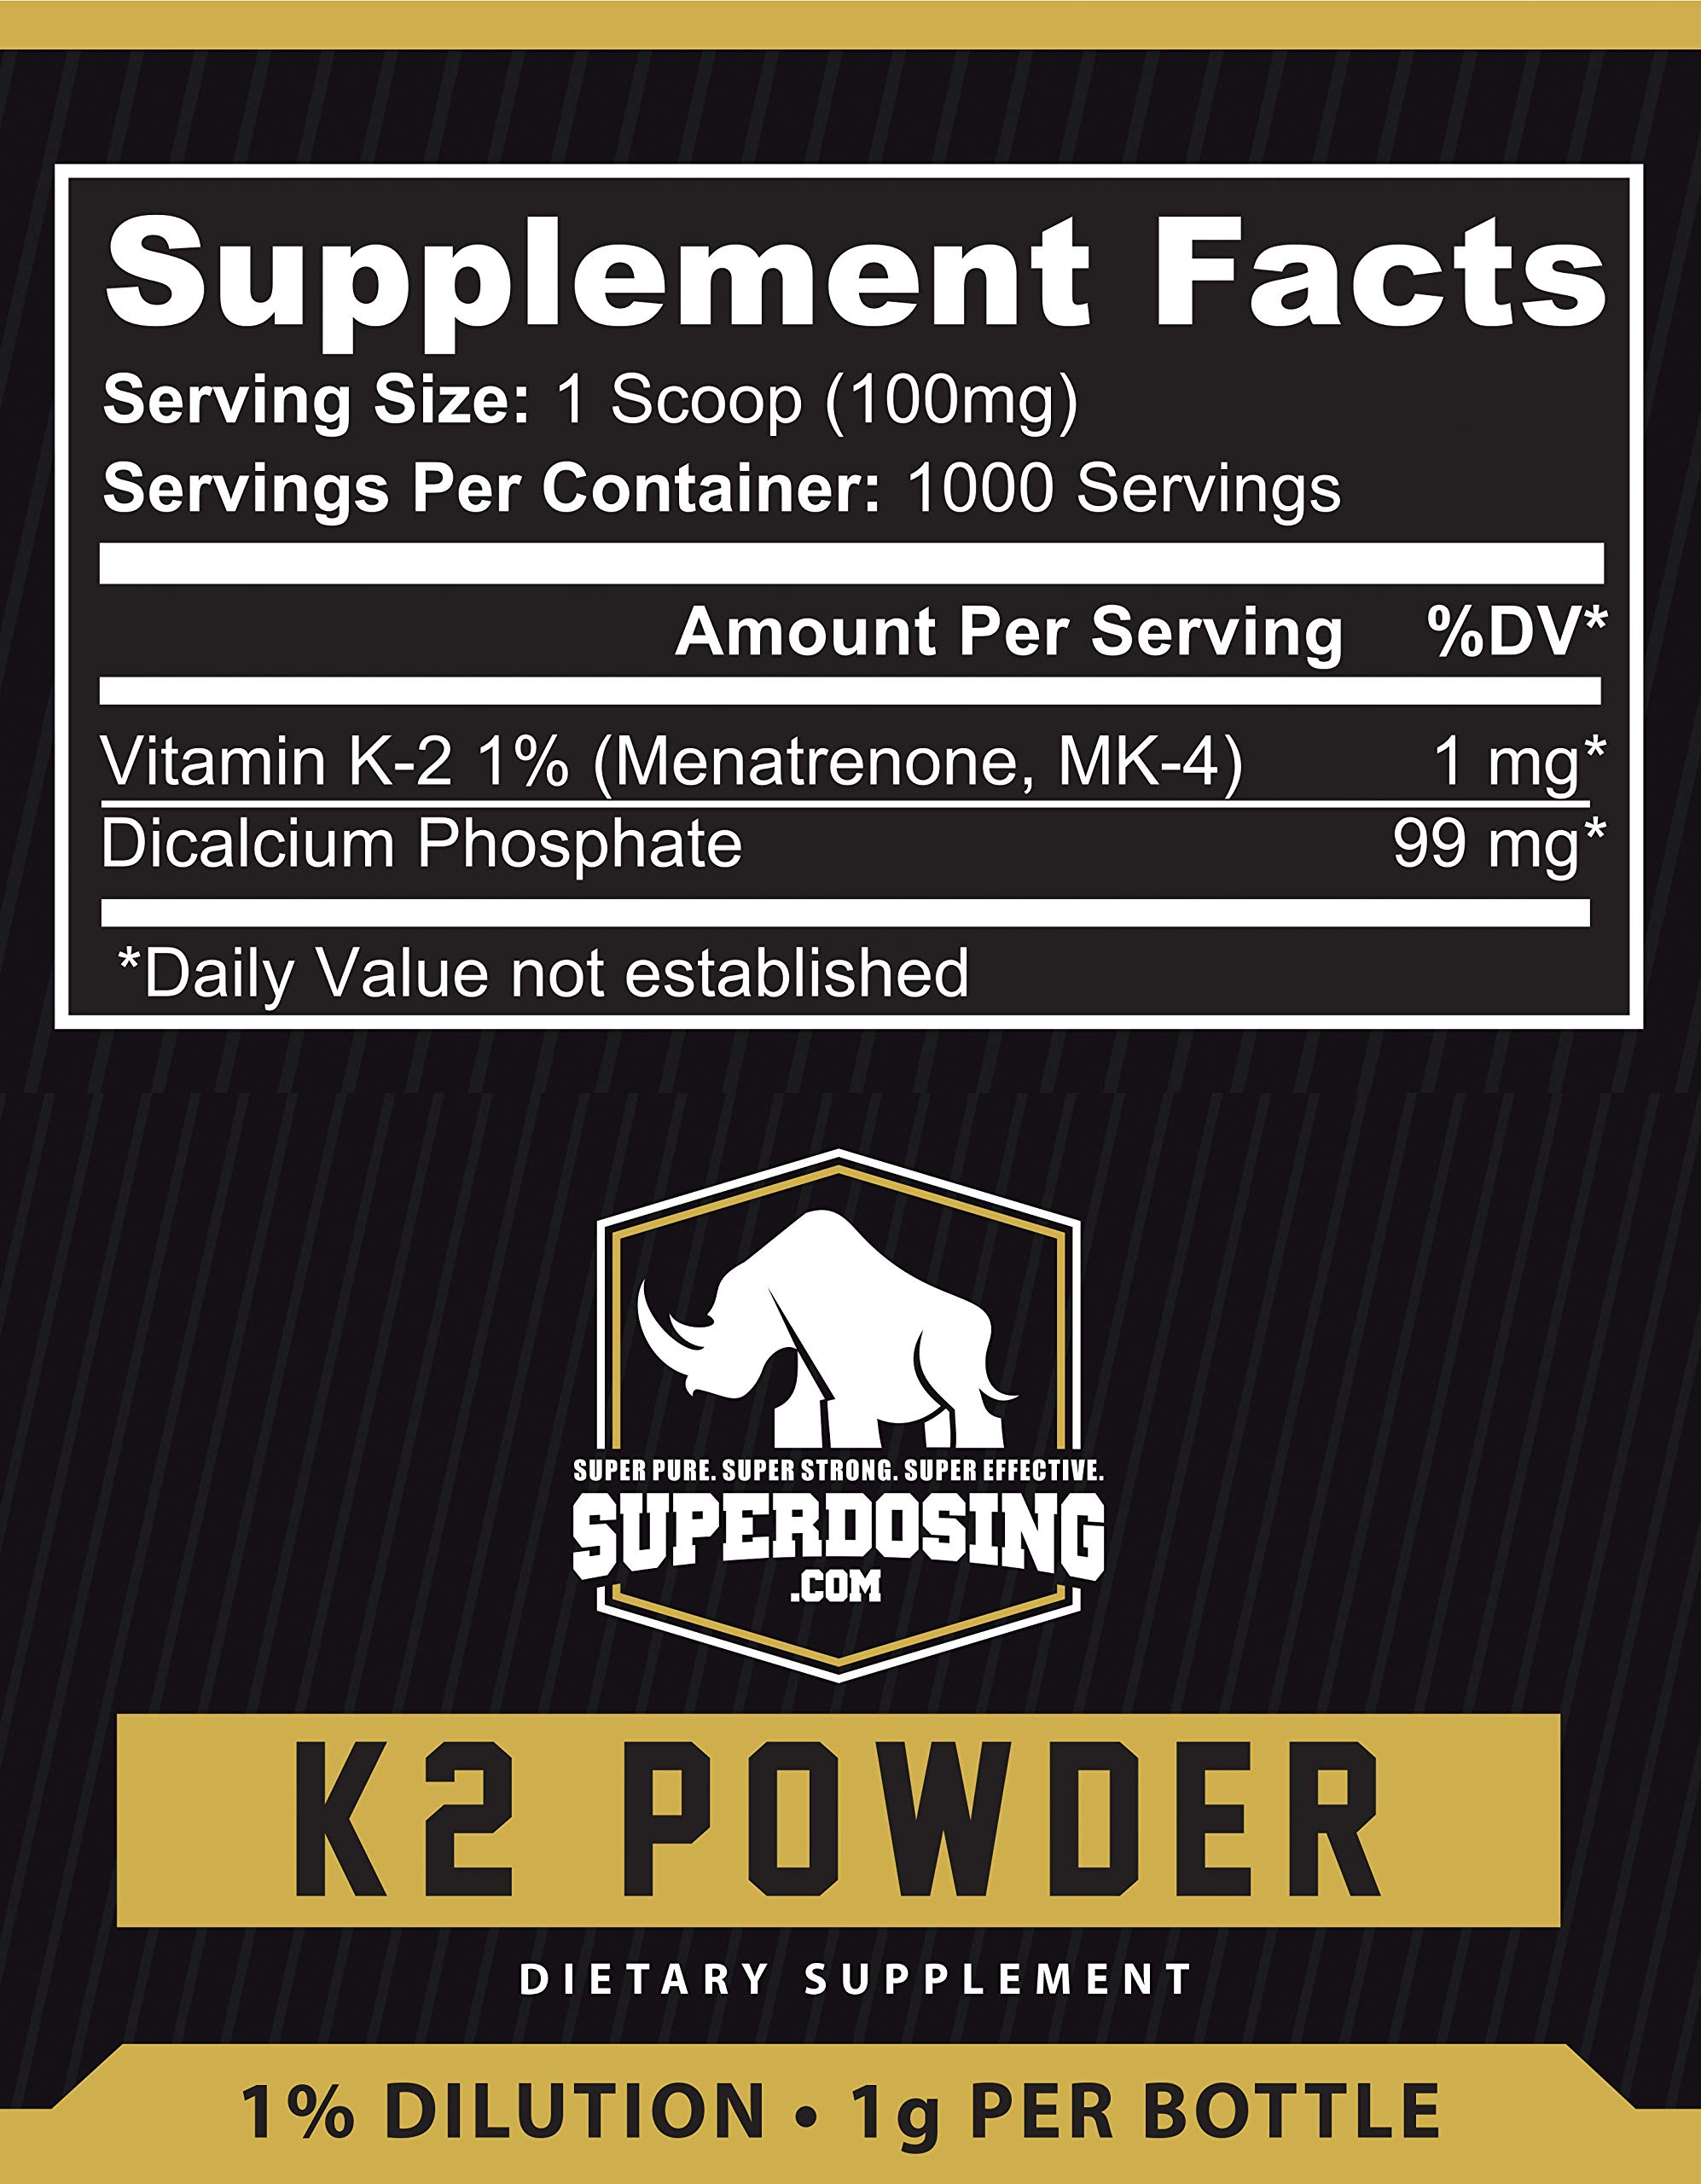 SuperDosings Bulk Vitamin K2 Powder 1000x 1mg Servings with Scoop. Buy High Strength Wholesale K-2 to Save & Supplement Your Health & Diet Regime. Essential For Strong & Healthy Bones, Joints & Heart